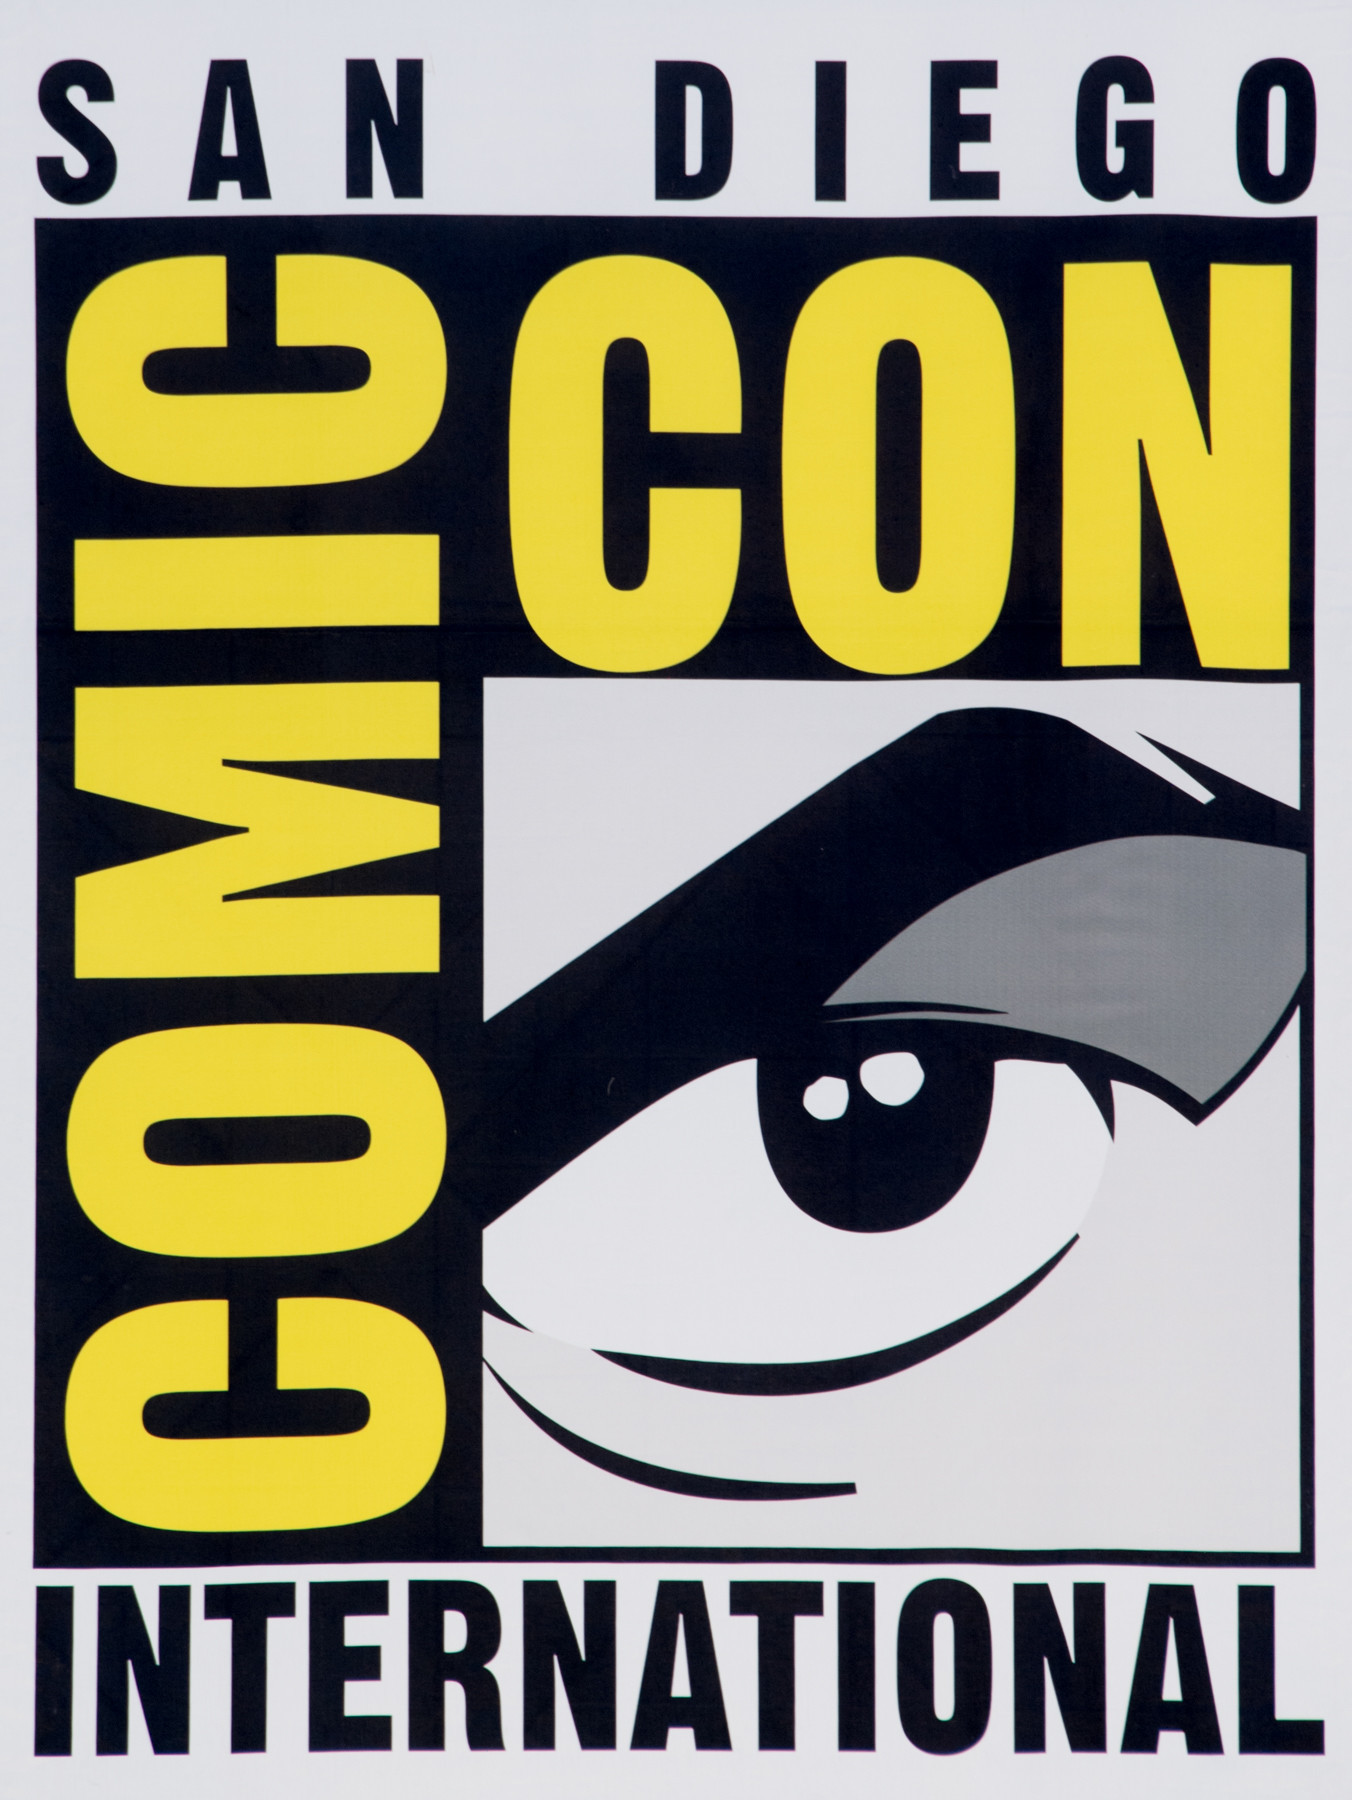 Comic-Con runs July 19-23.